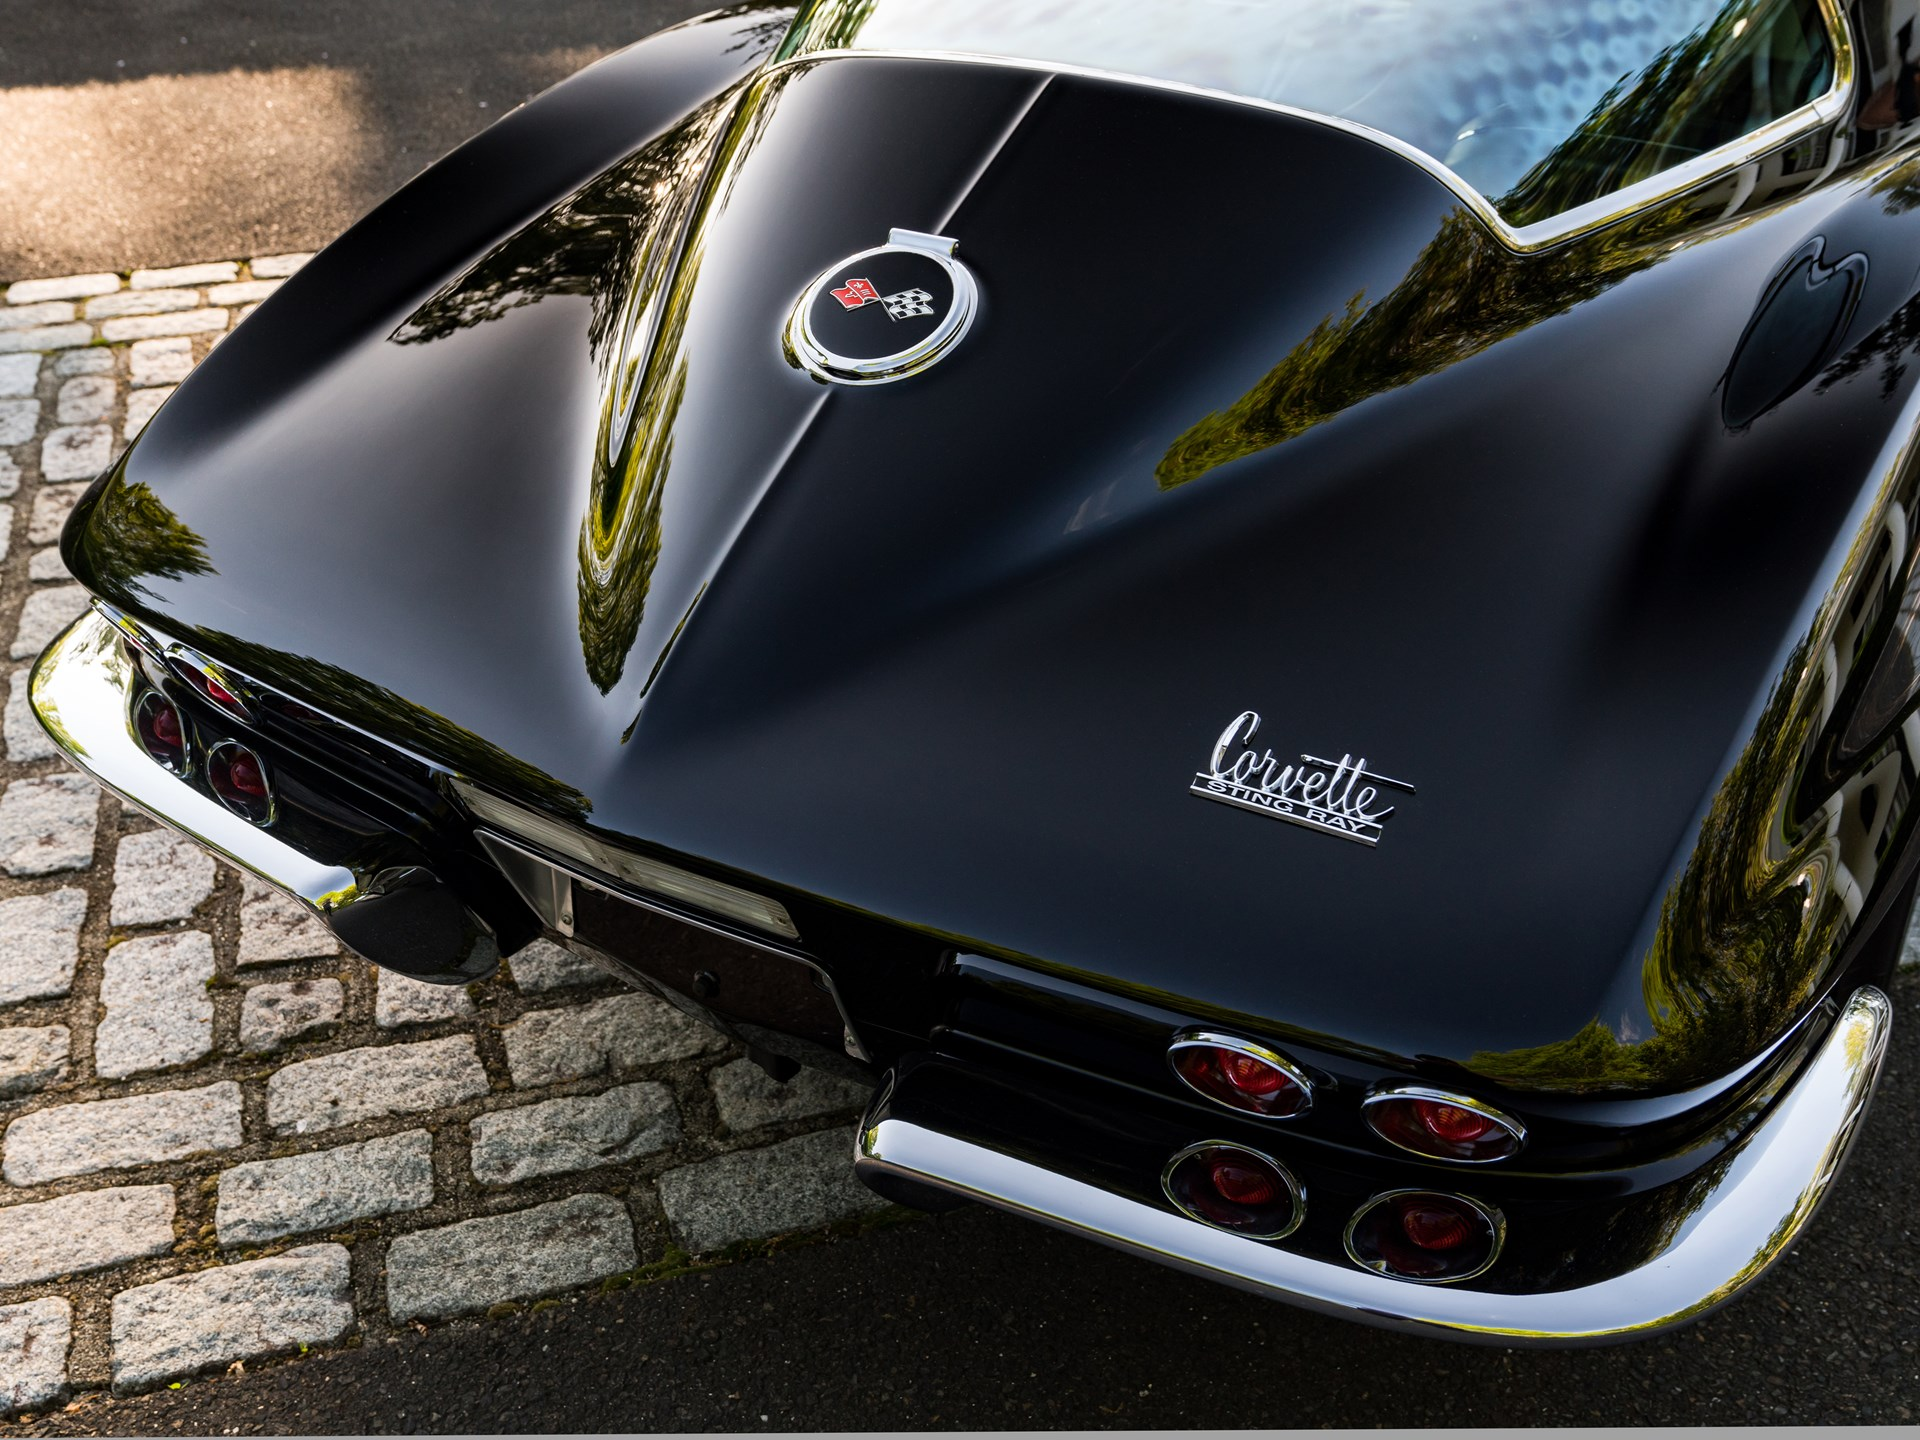 1967 Chevrolet Corvette Sting Ray L88 Coupe